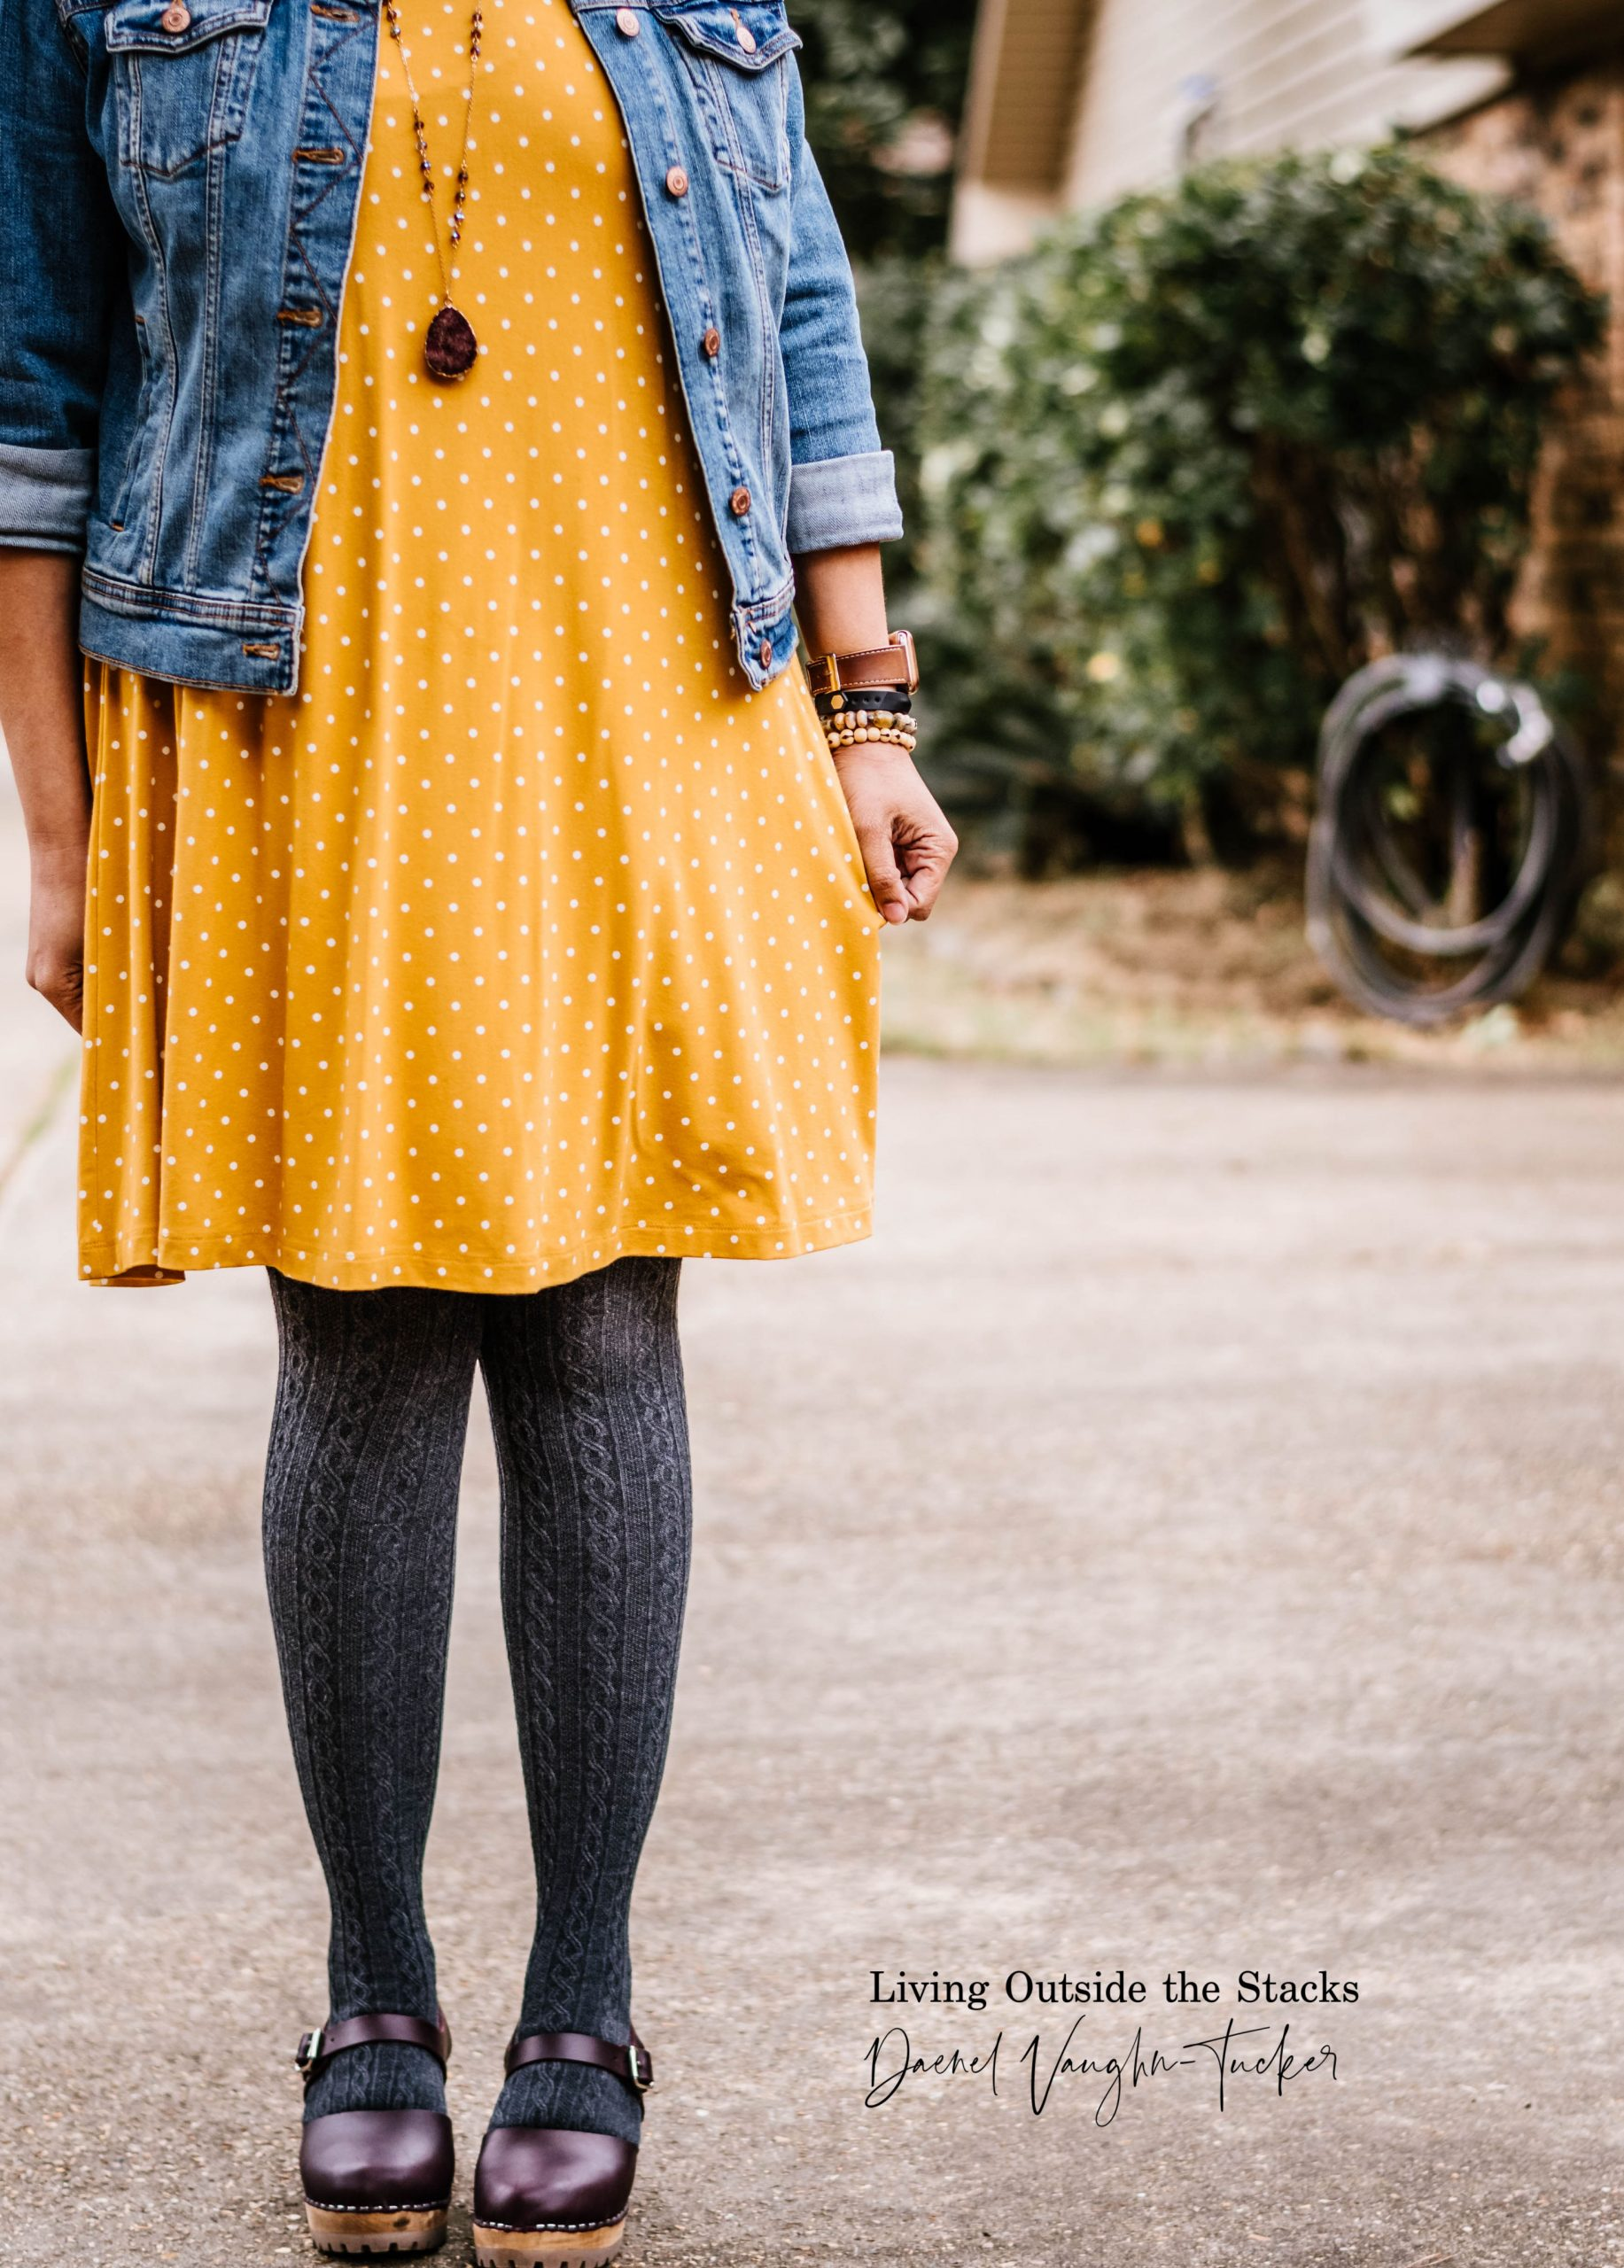 Denim Jacket Polka Dot Dress Gray Tights Clogs {living outside the stacks}